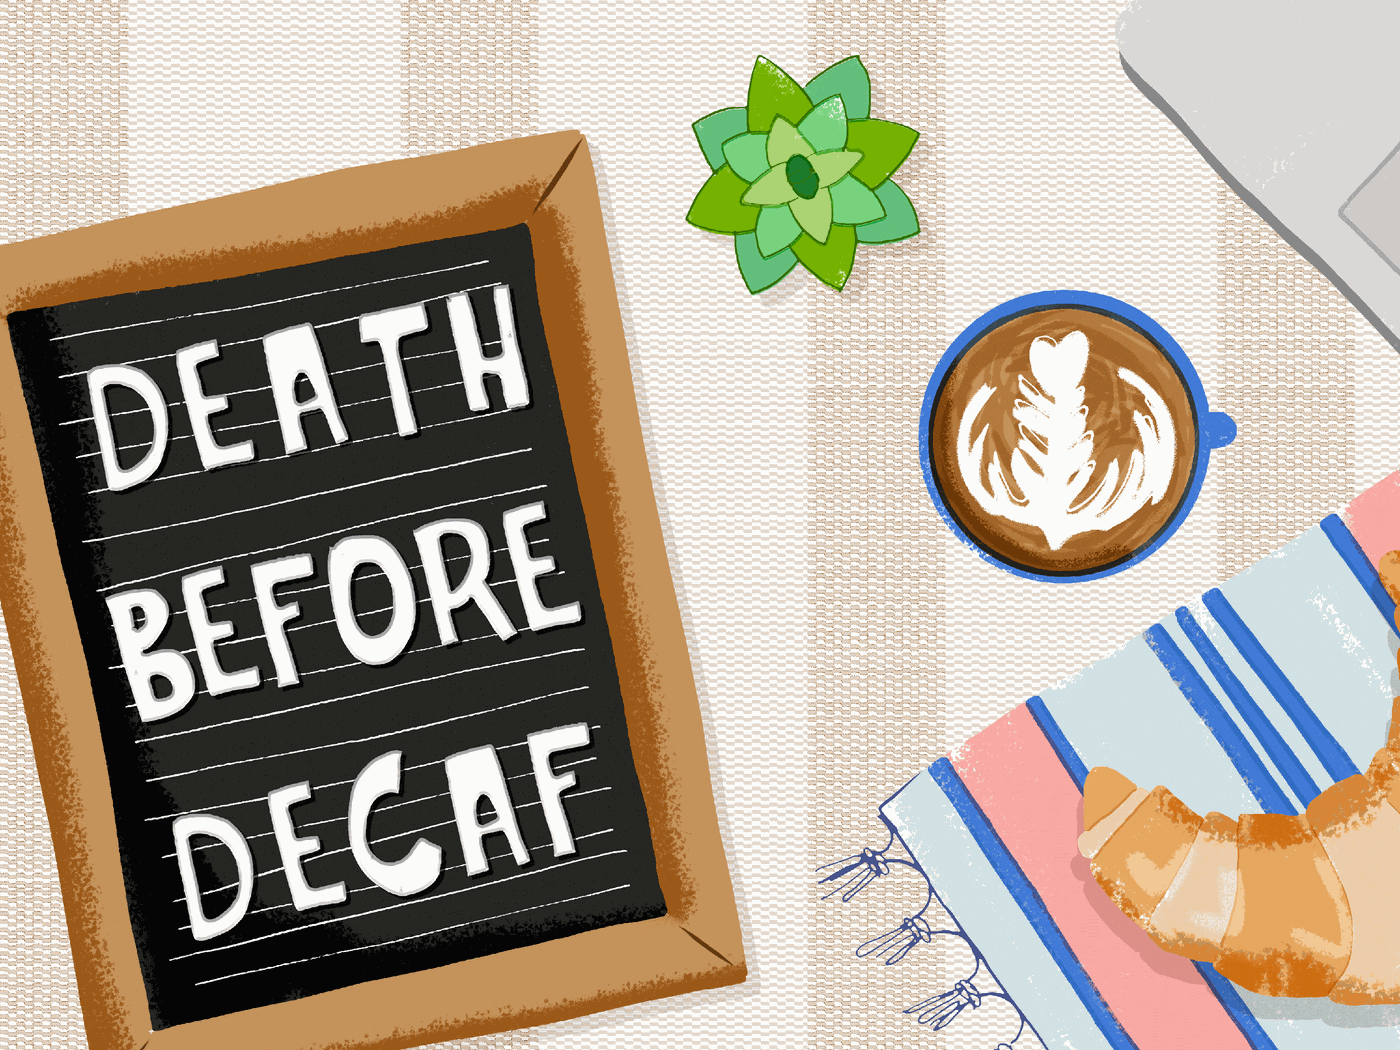 Decaf coffee: why the stuff without caffeine has a bad reputation ... #tooMuchCoffee